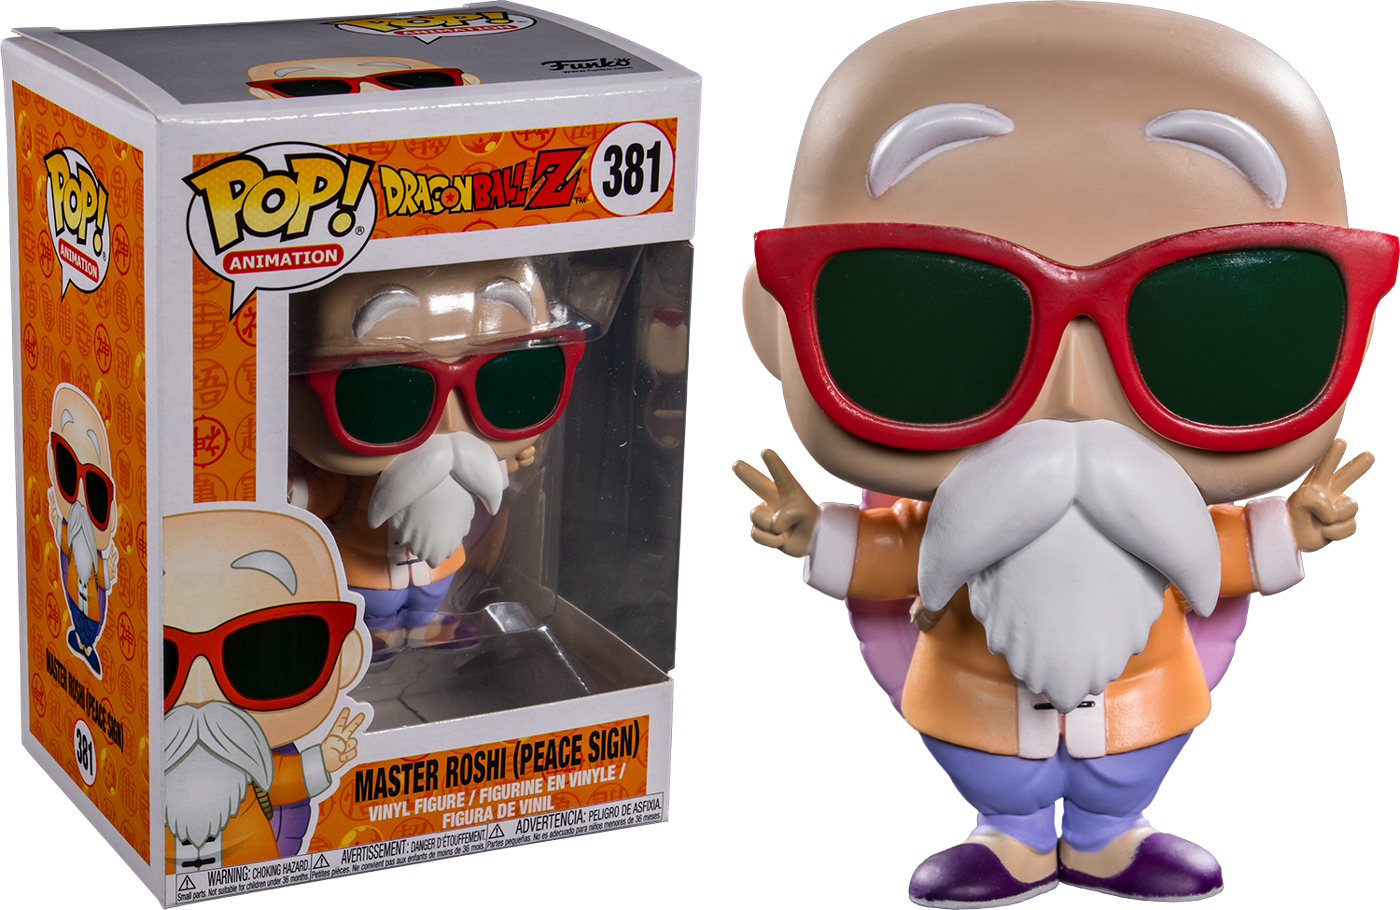 Dragonball Z POP! Animation Vinyl Figure Master Roshi  Peace Sign Limited 9 cm